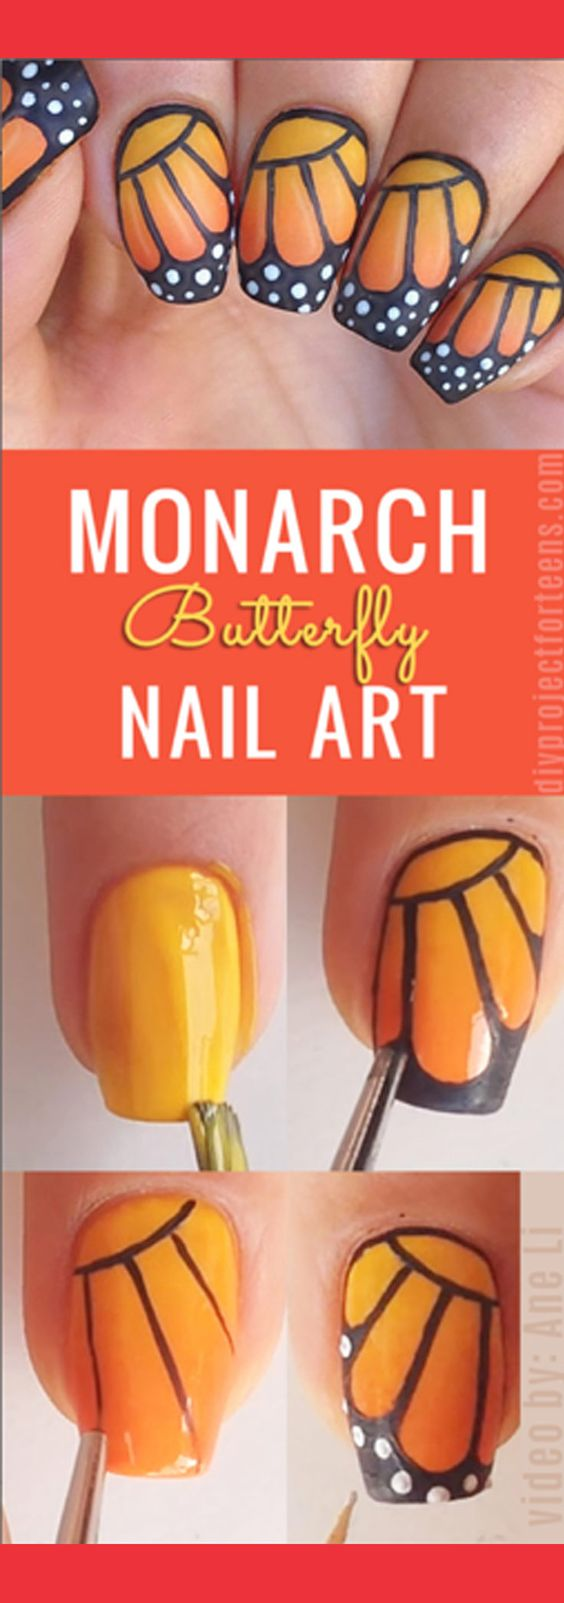 nail37 - 111 Nail Art Tutorials - Learn How To Do The Simple Ones To Intricate Details